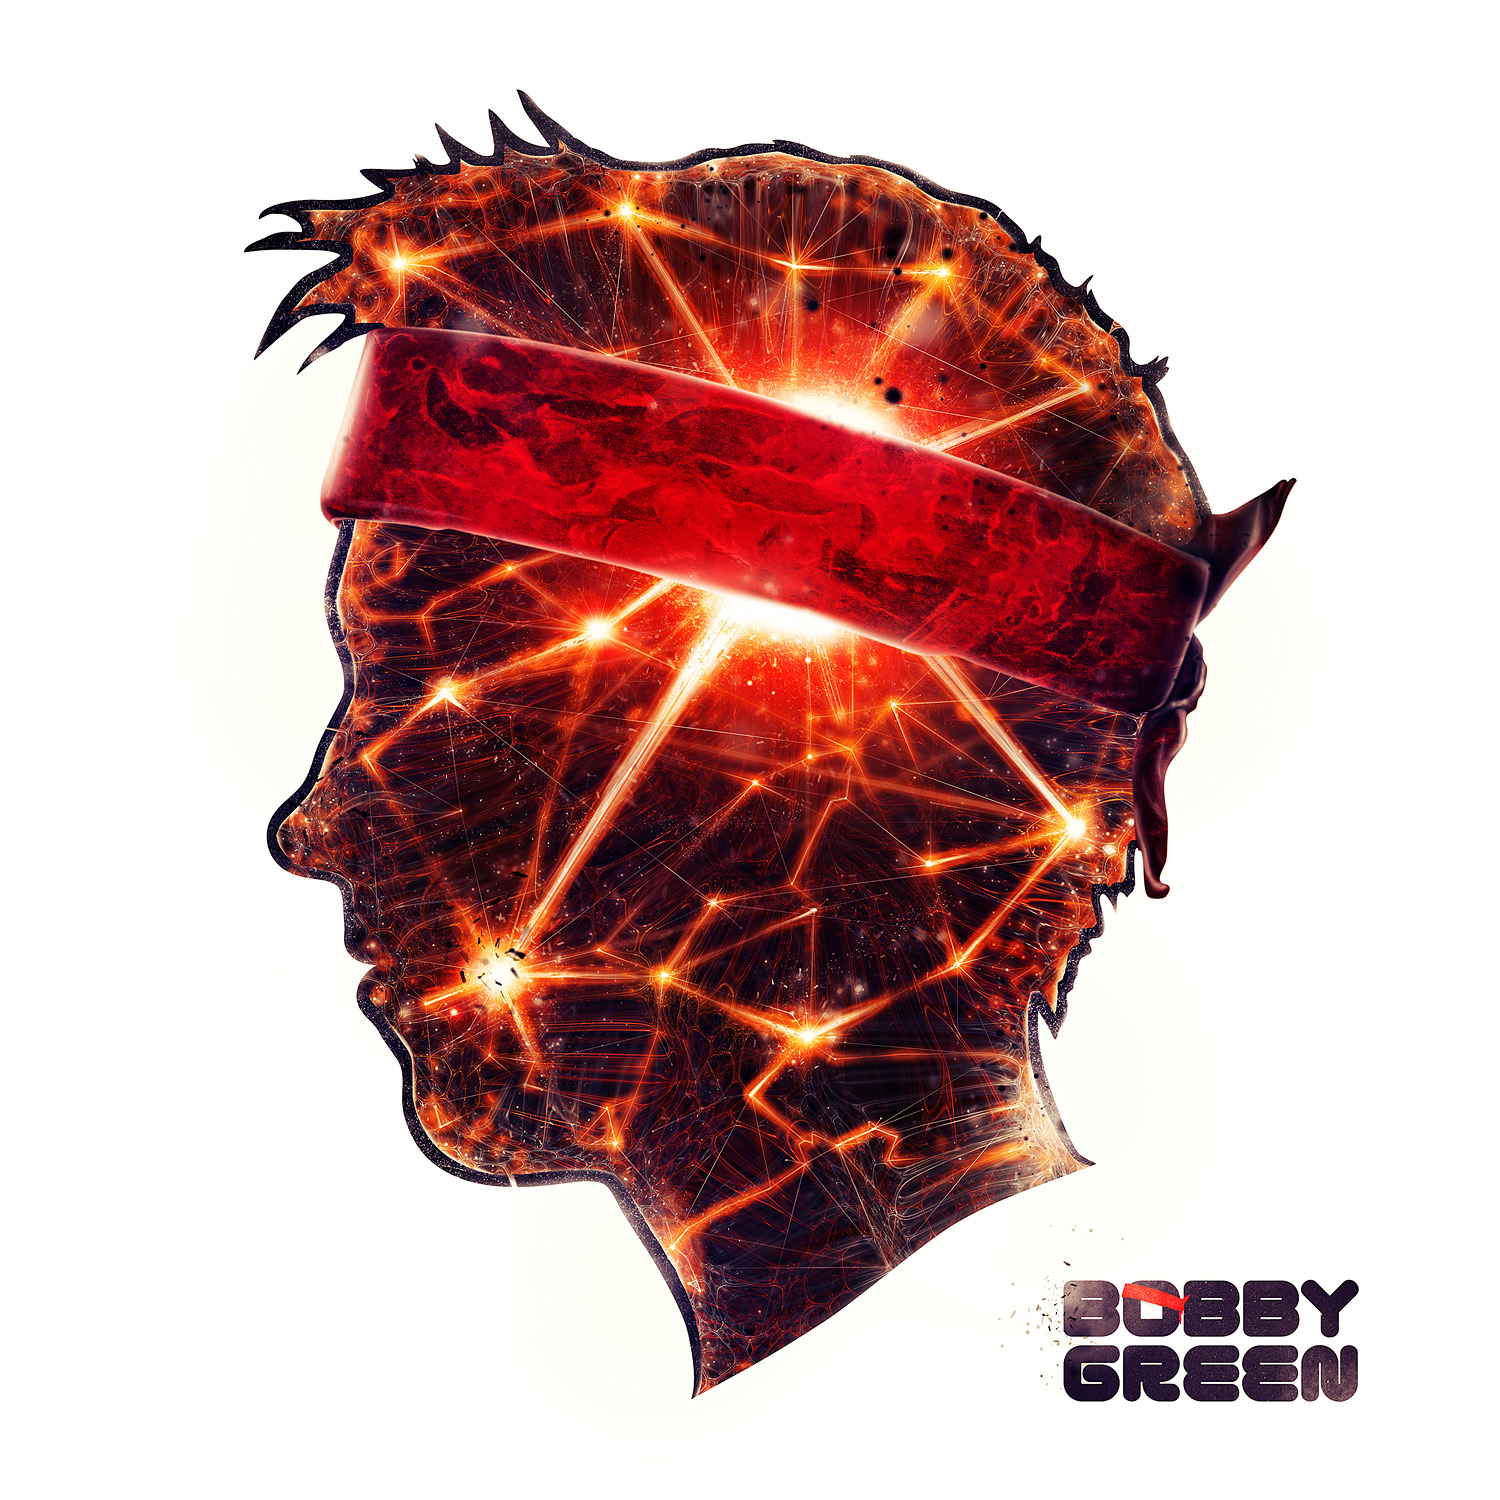 Bobby Green - Goin' Crazy (feat. Jocelyn Ellis)